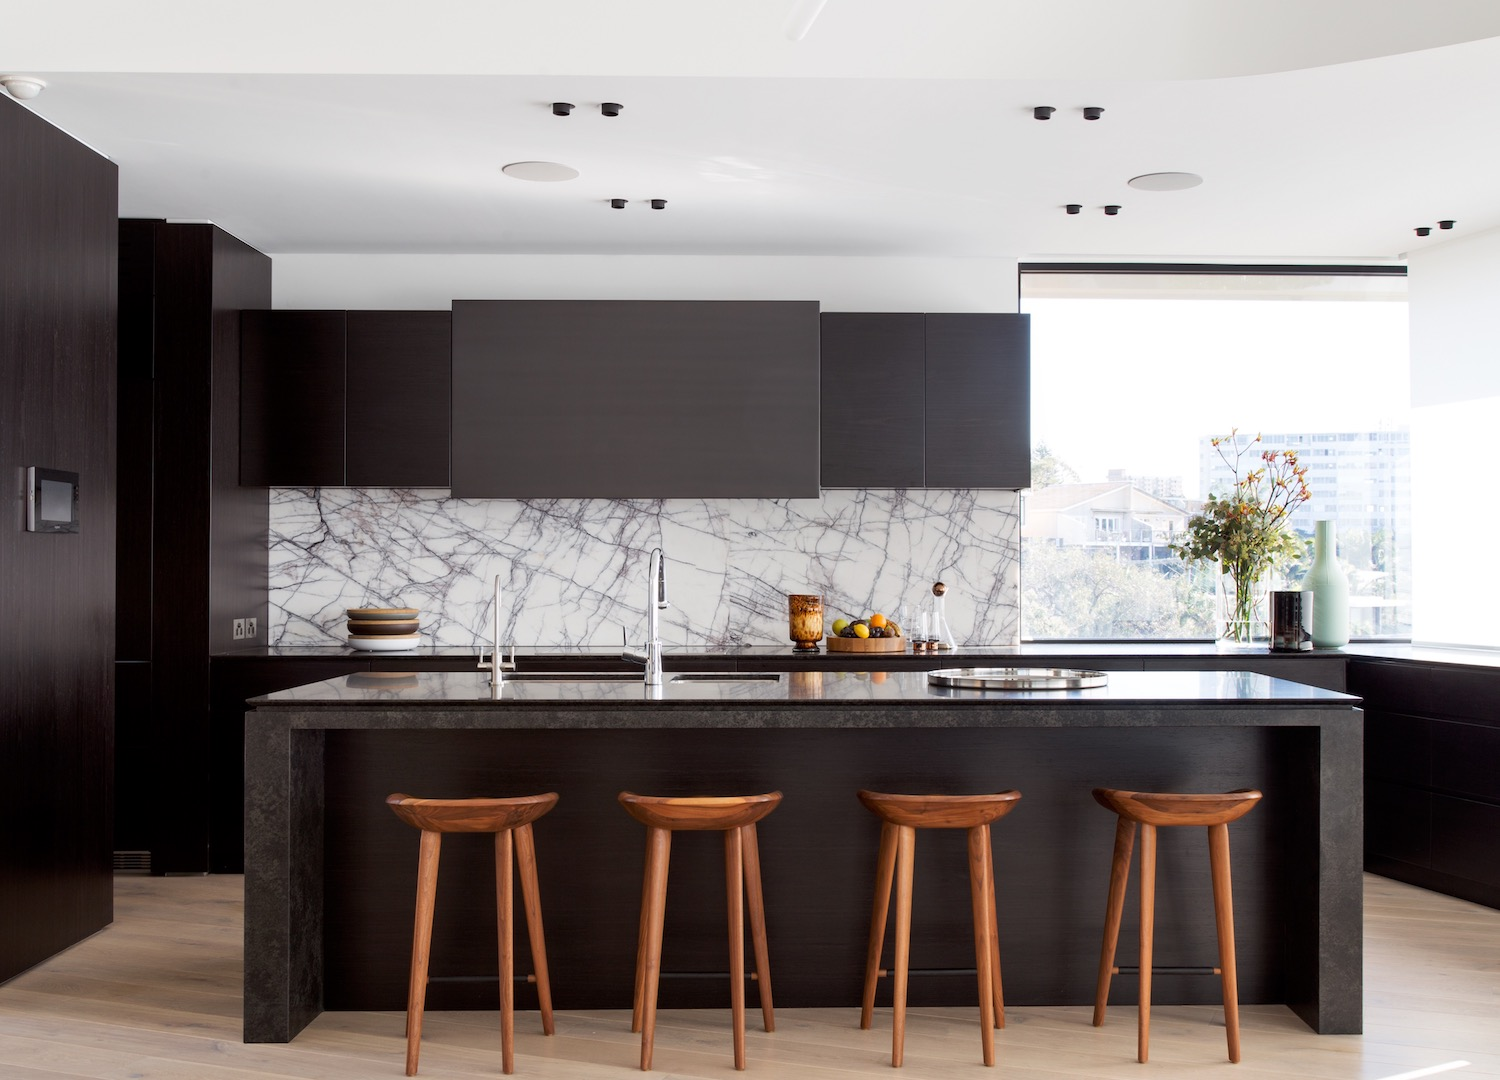 ARCHITECTURE:Porebski Architects |PHOTOGRAPHY:Andrew Worssam and Justin Alexander